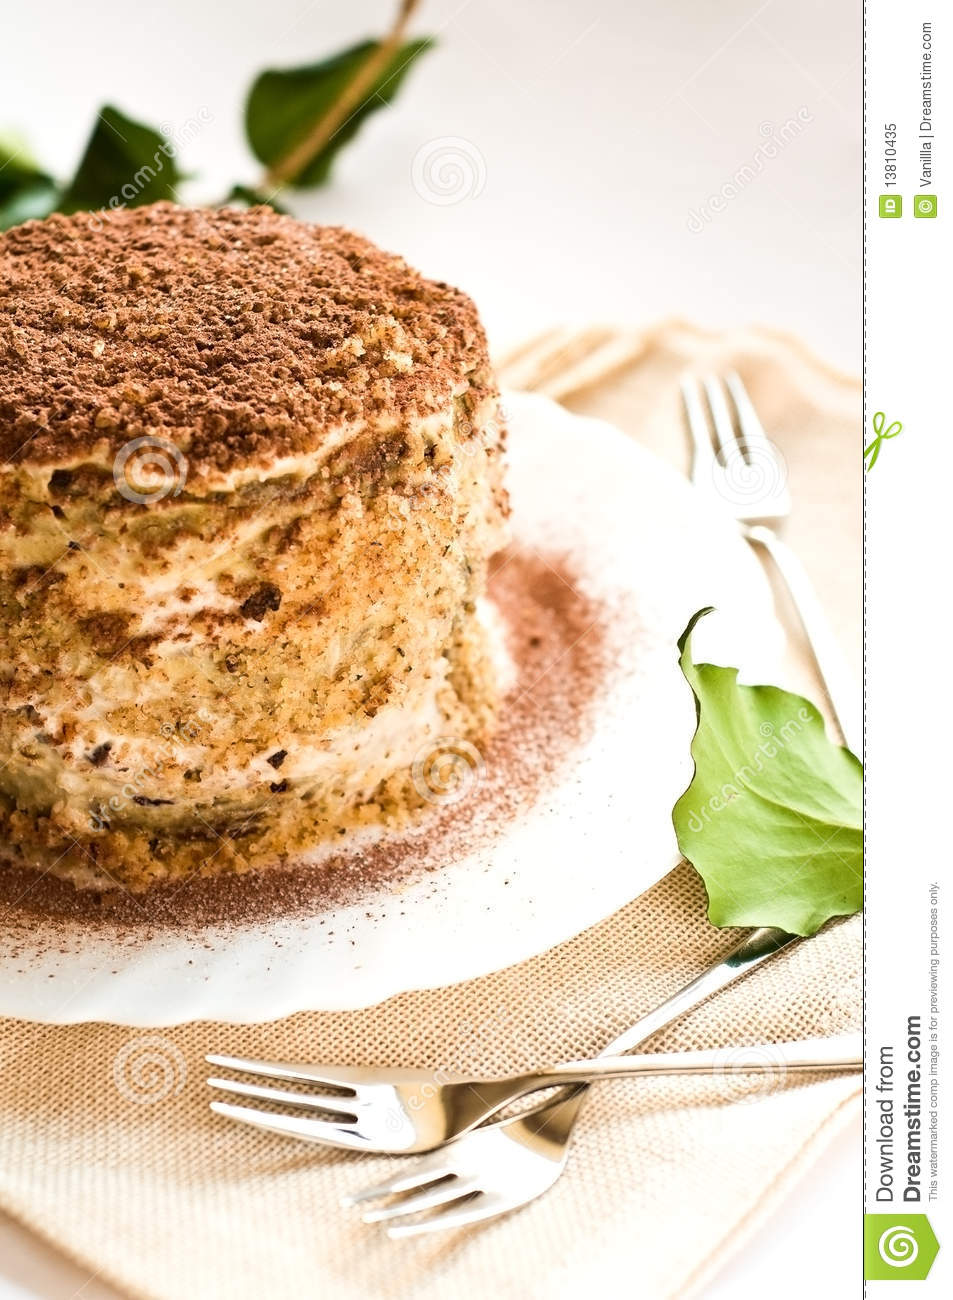 Clipart Of Honey Cake : Medovik Royalty Free Stock Photo - Image: 13810435